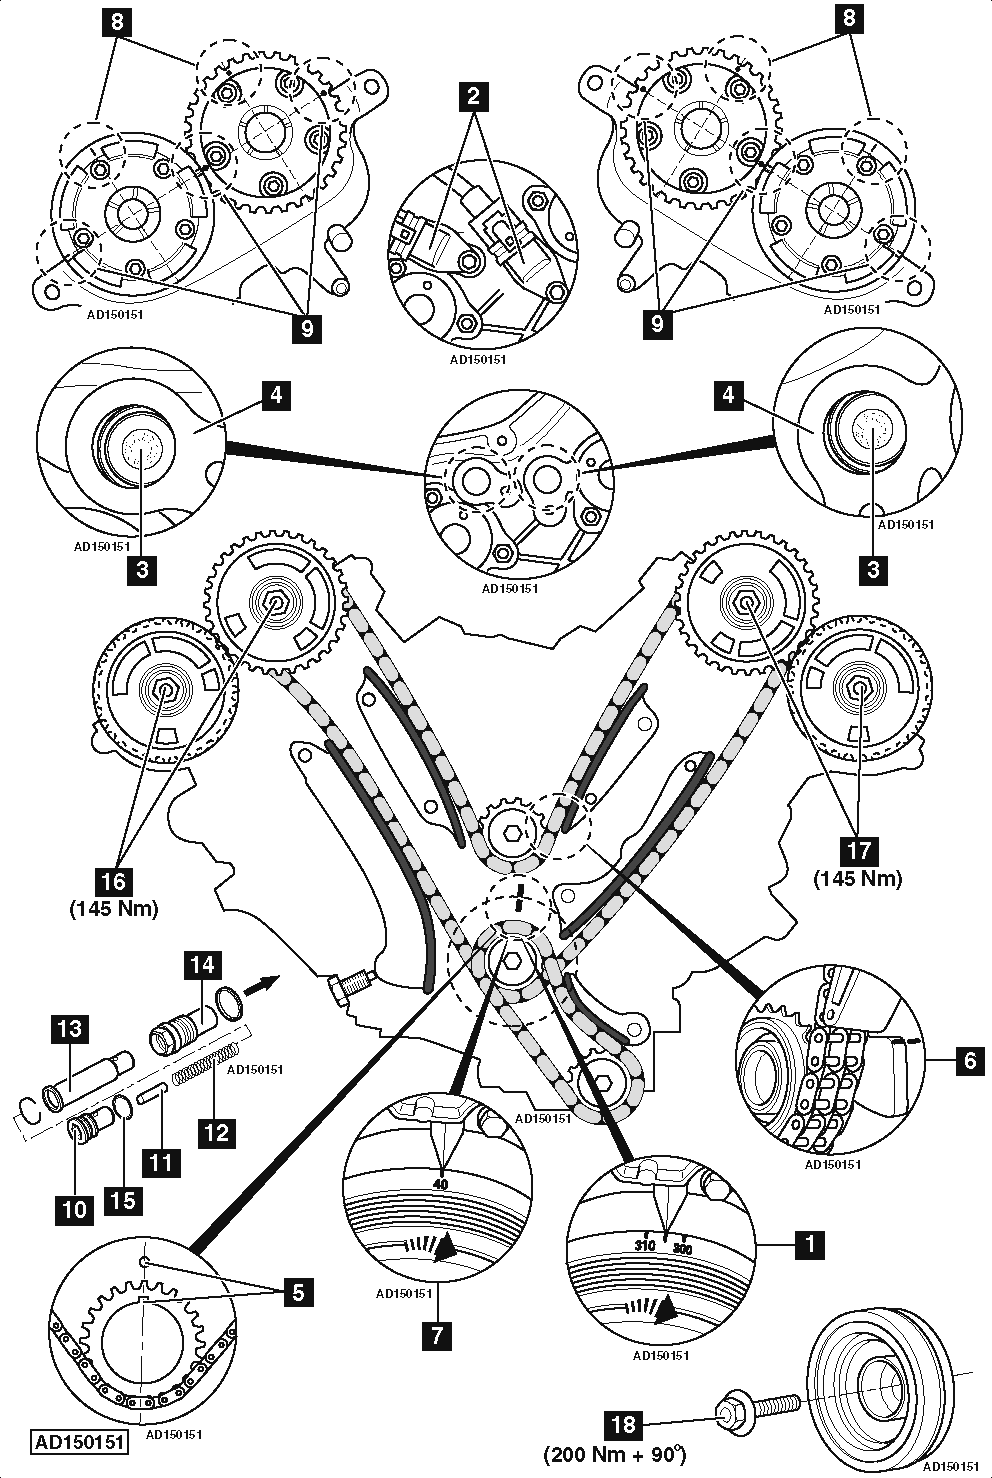 hight resolution of belt diagram 2006 mercedes benz timing chain diagram mercedes benz 2006 mercedes benz serpentine belt replacement 2006 mercedes benz belt diagram